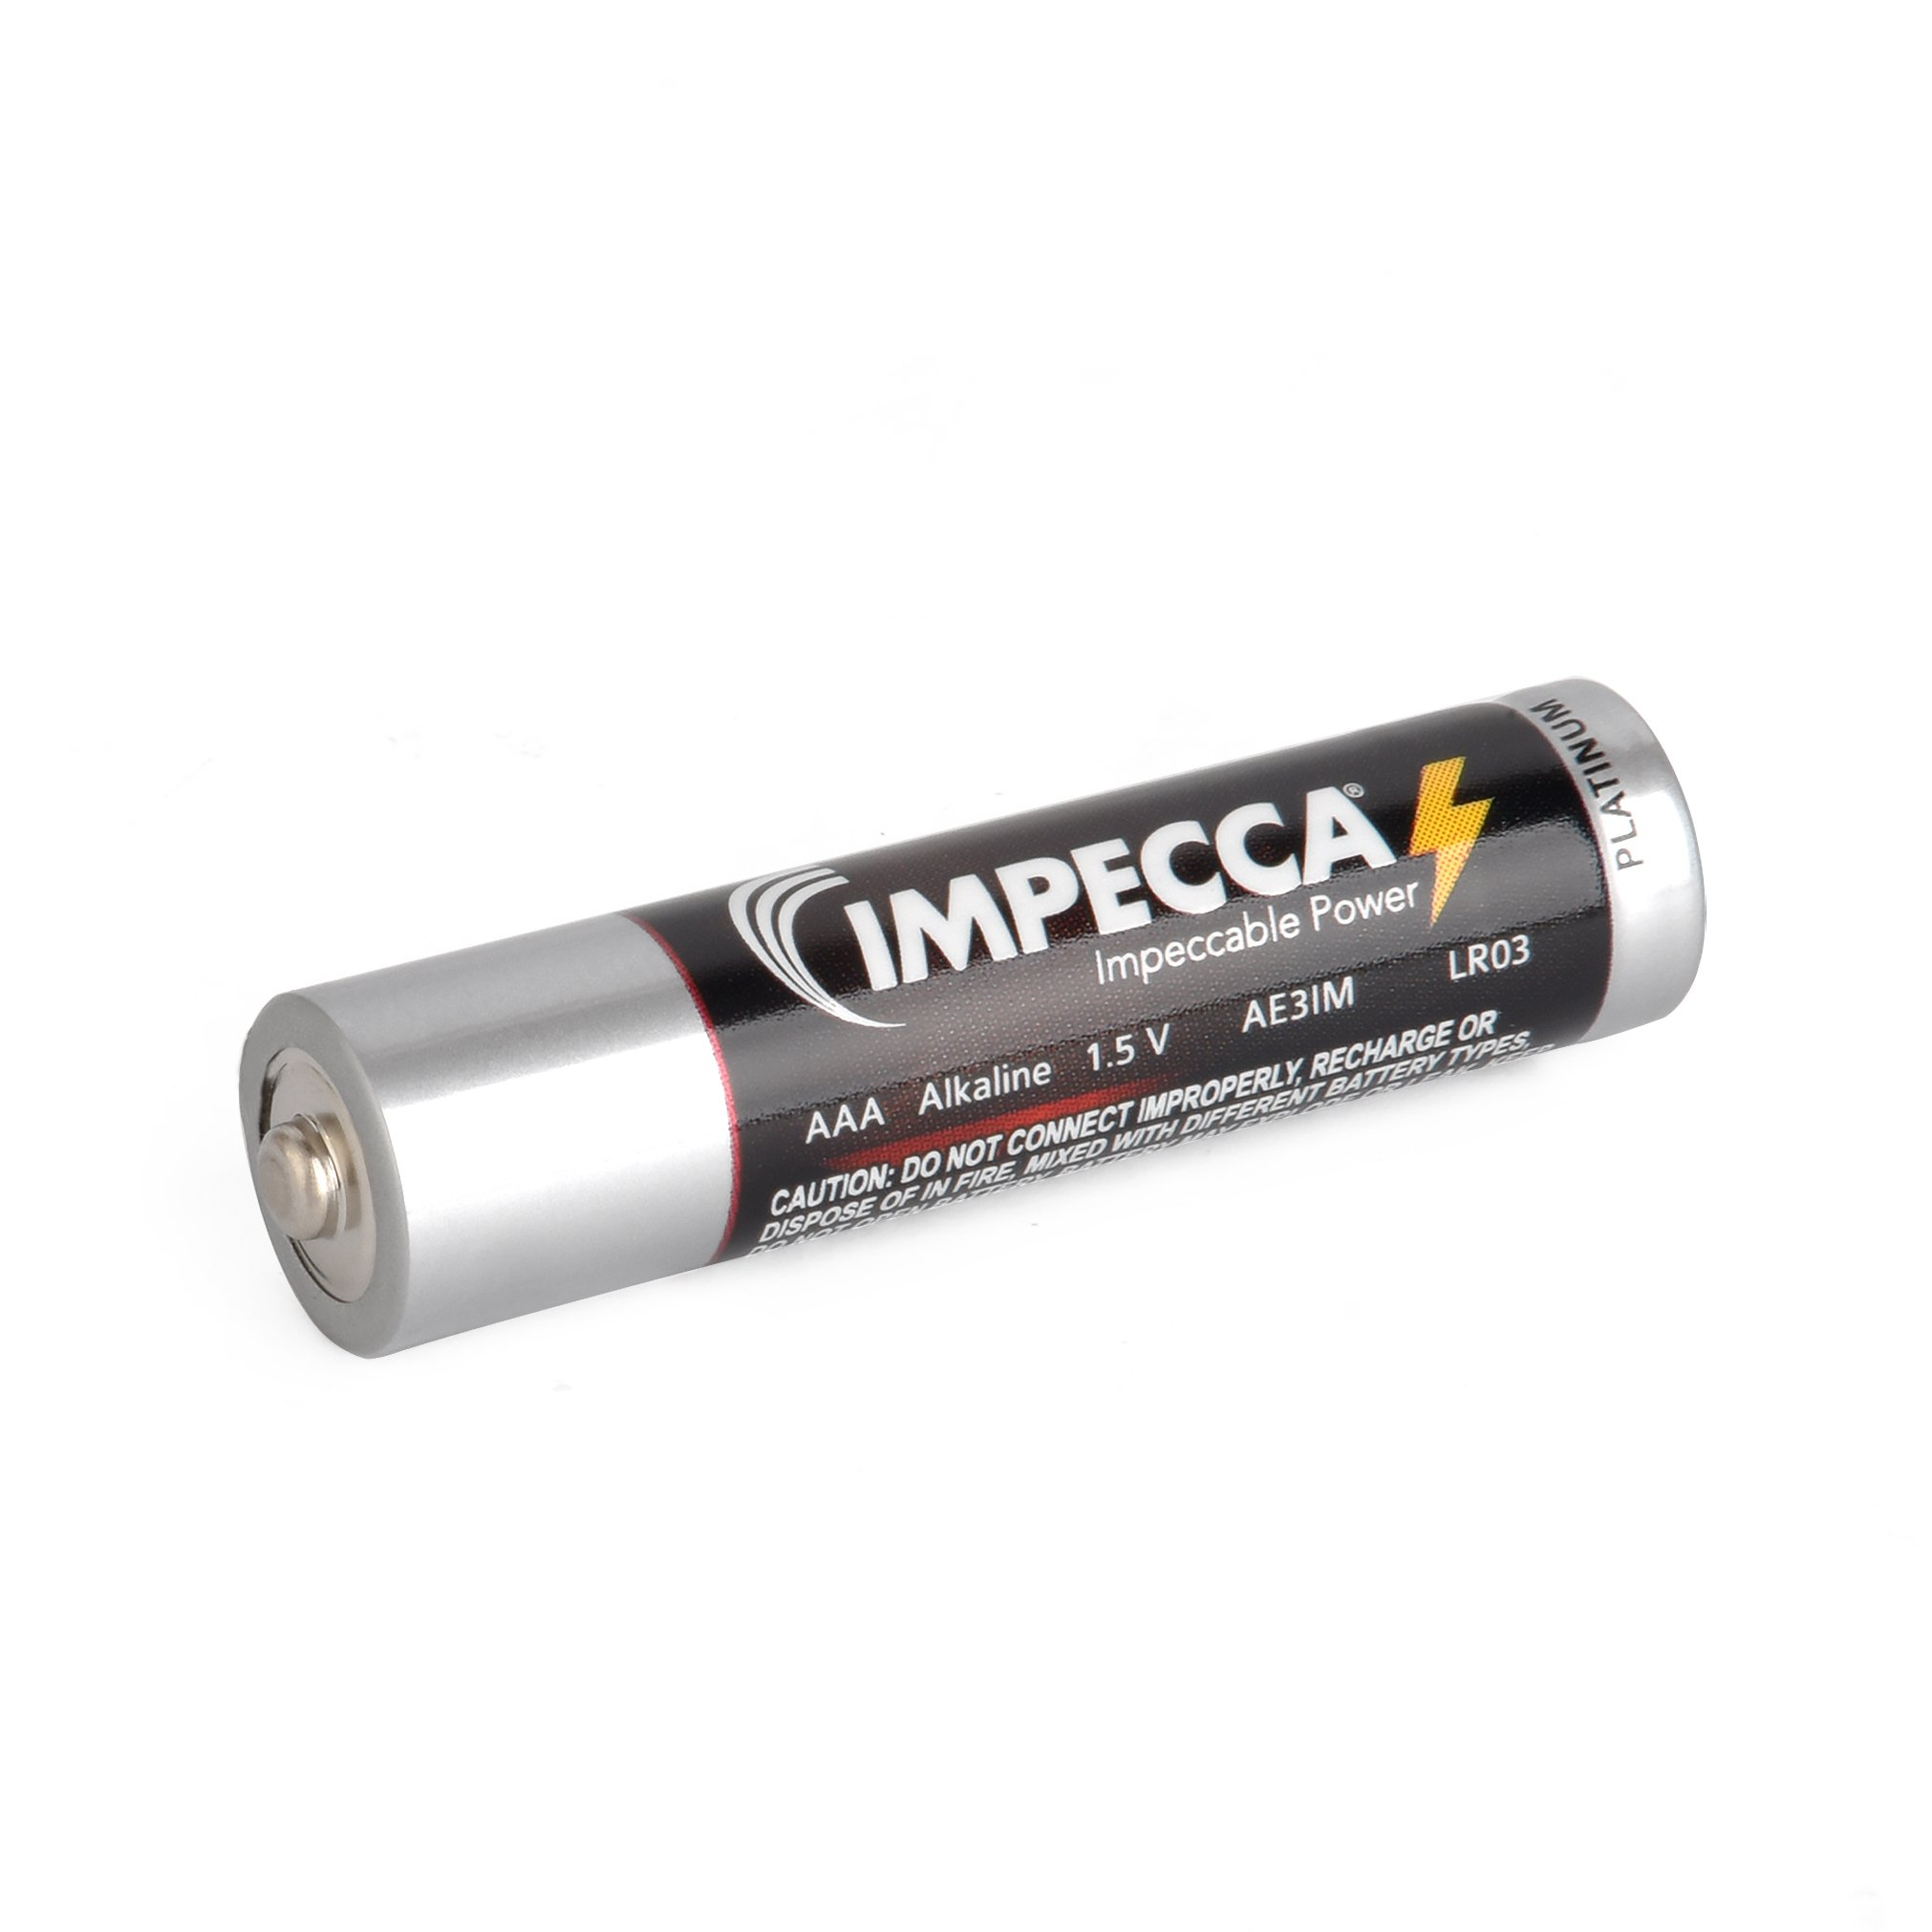 IMPECCA AAA Batteries, All Purpose Alkaline Batteries (100-Pack) High Performance AAA Battery Long Lasting Shelf Life and Leak Resistant 100-Count LR3 - Platinum Series